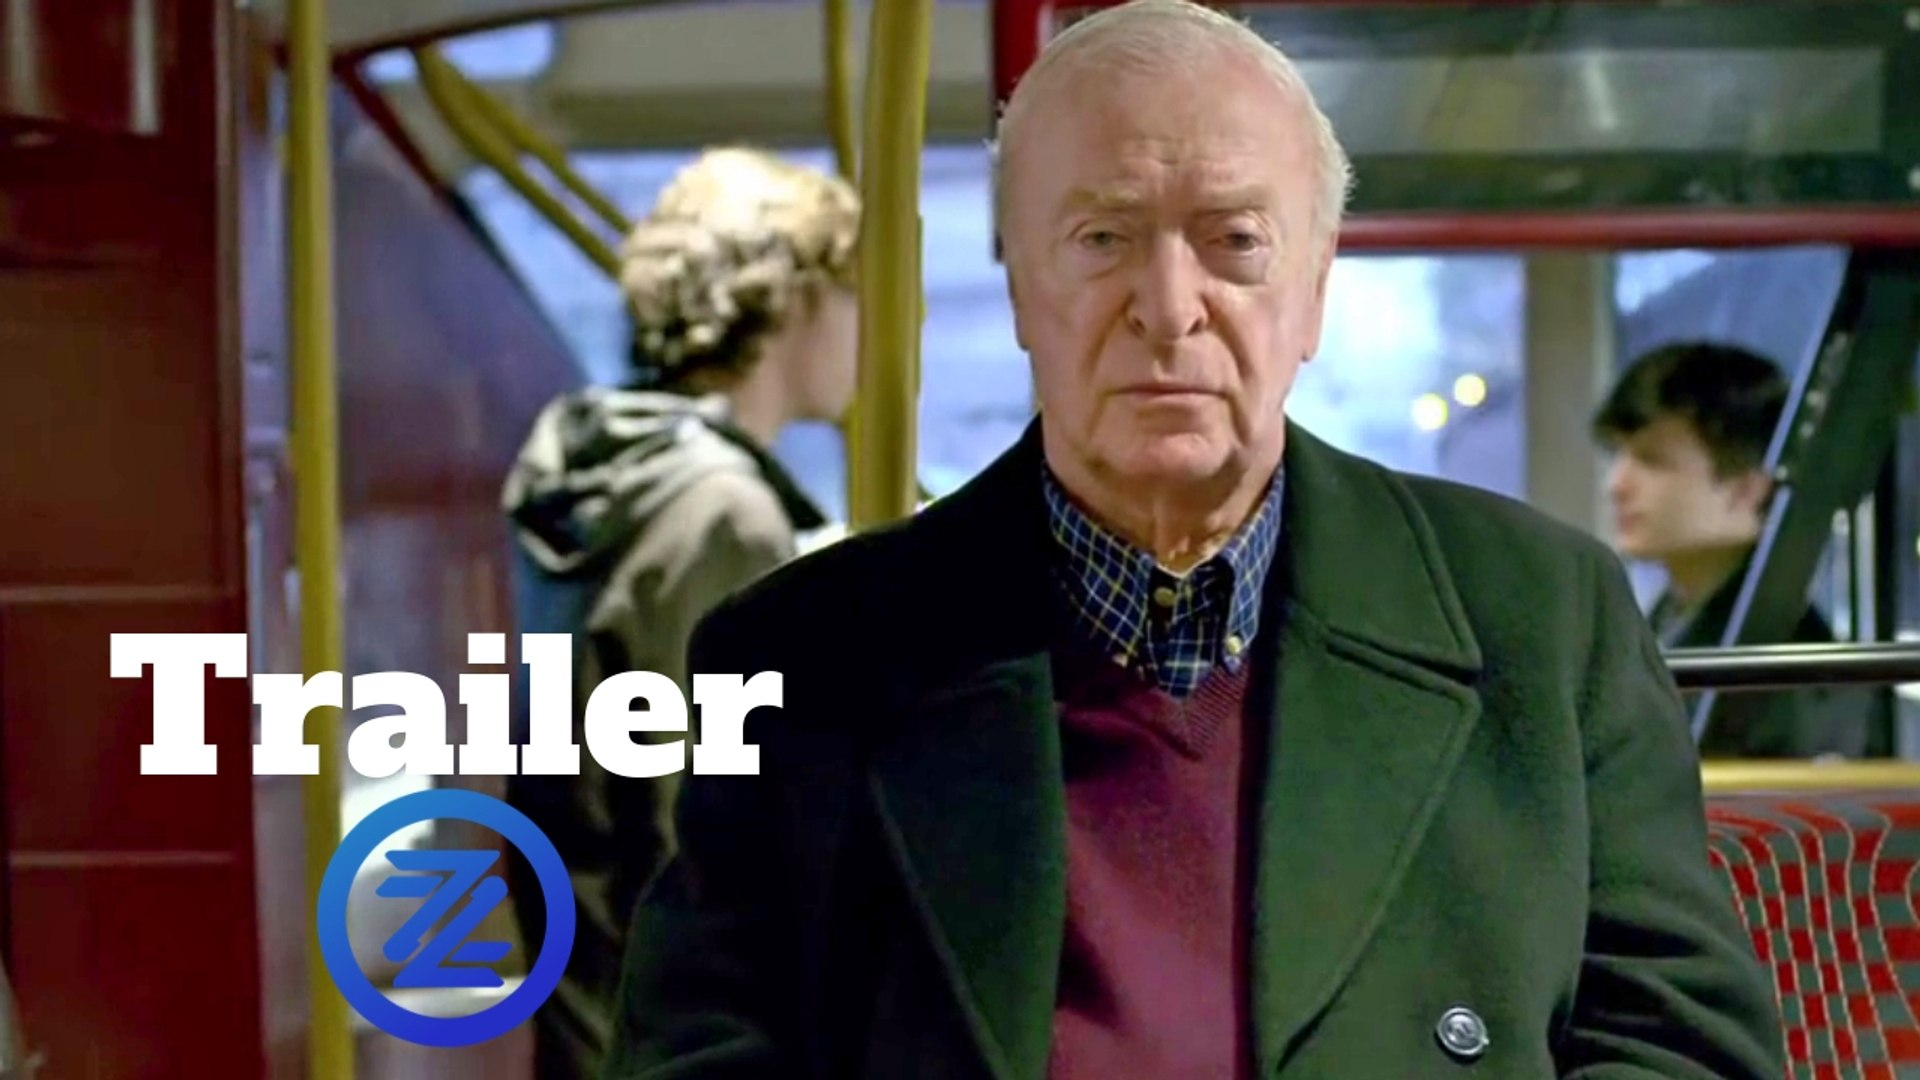 King of Thieves Trailer #1 (2018) Michael Caine Drama Movie HD